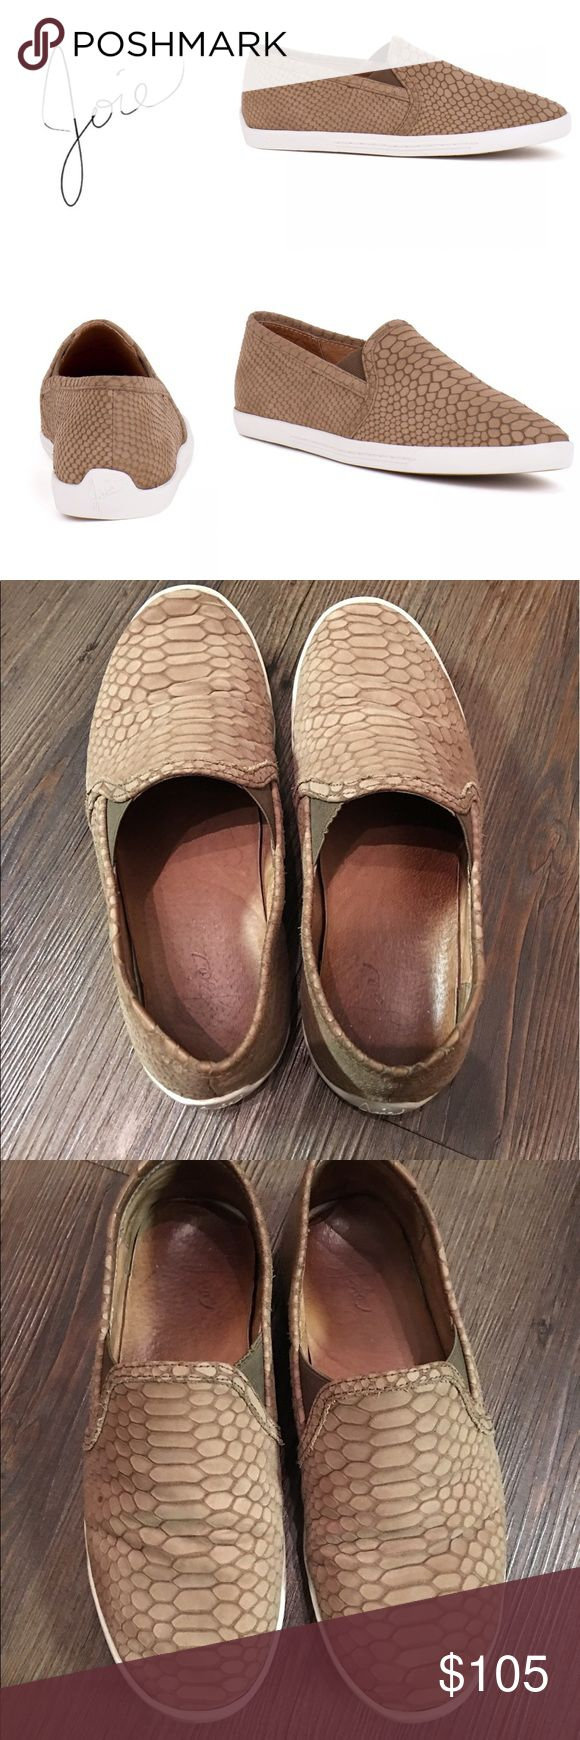 Joie Kidmore Slip On Sneaker Gravel (Brown) Python The street wear staple gets a chic update in leather. An off duty classic with luxe appeal, our Kidmore slip on sneaker is a wardrobe must!  * Size 7.0 * EUC - Leather soft from wear, but no flaws or defects! Joie Shoes Sneakers